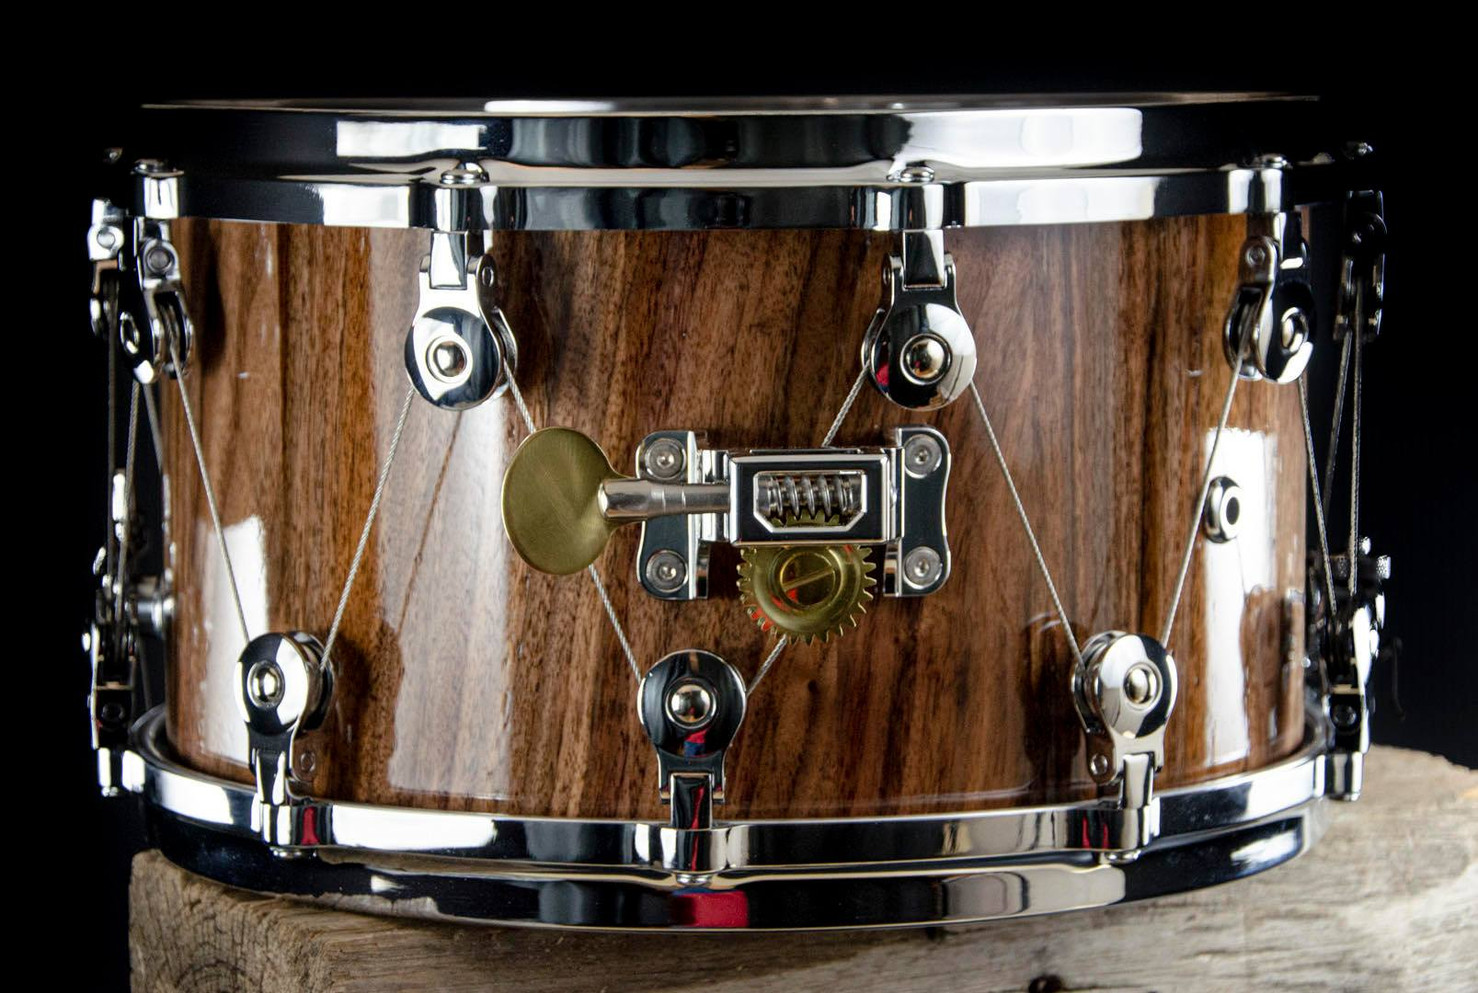 Outlaw Drums snare drum with WTS tuning knob drum tuning hardware